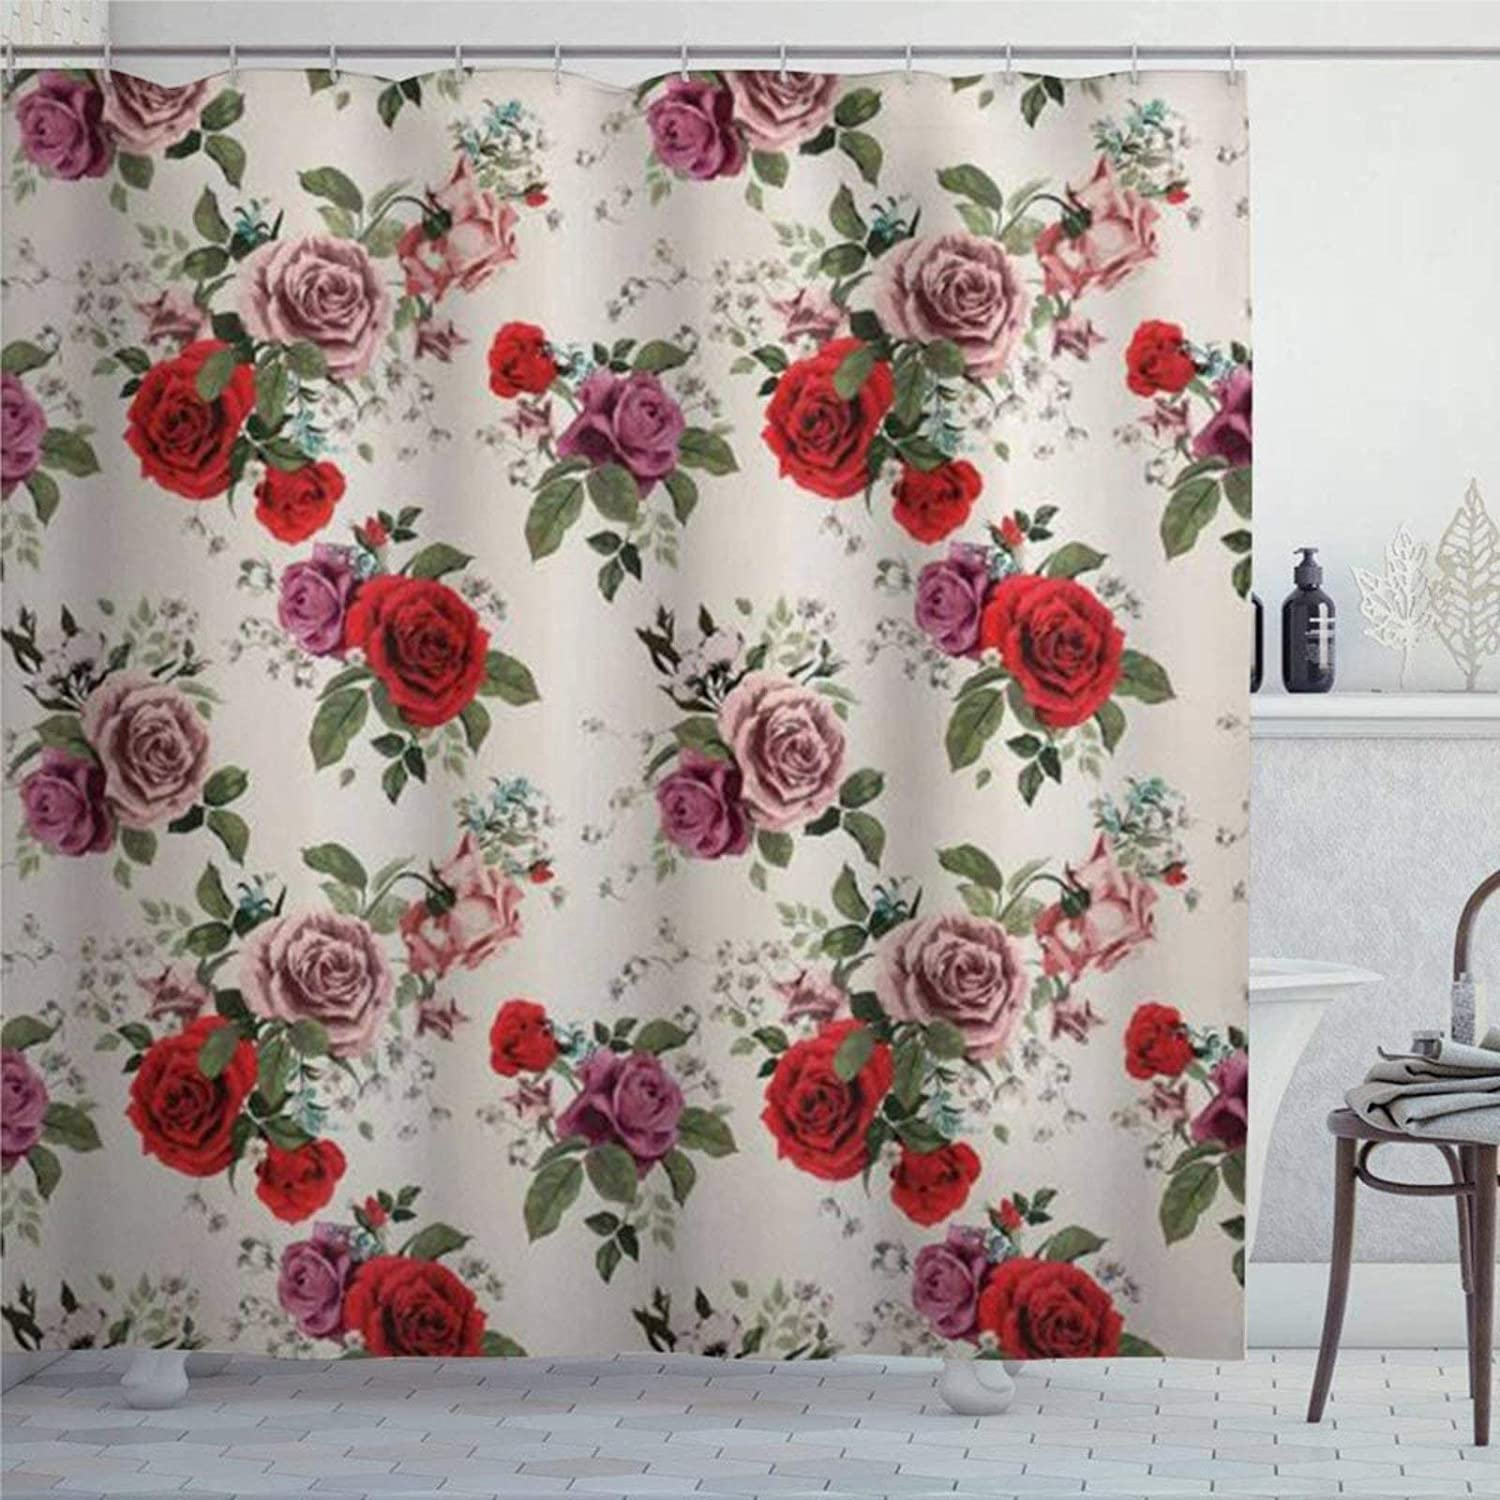 EricauBird Garden Floral Repeating Pattern of Romantic Roses Spring Love Themed Shower Curtain with Rings Polyester Fabric Shower Curtains with Hooks Bath Bathroom Decor 72x72 inch